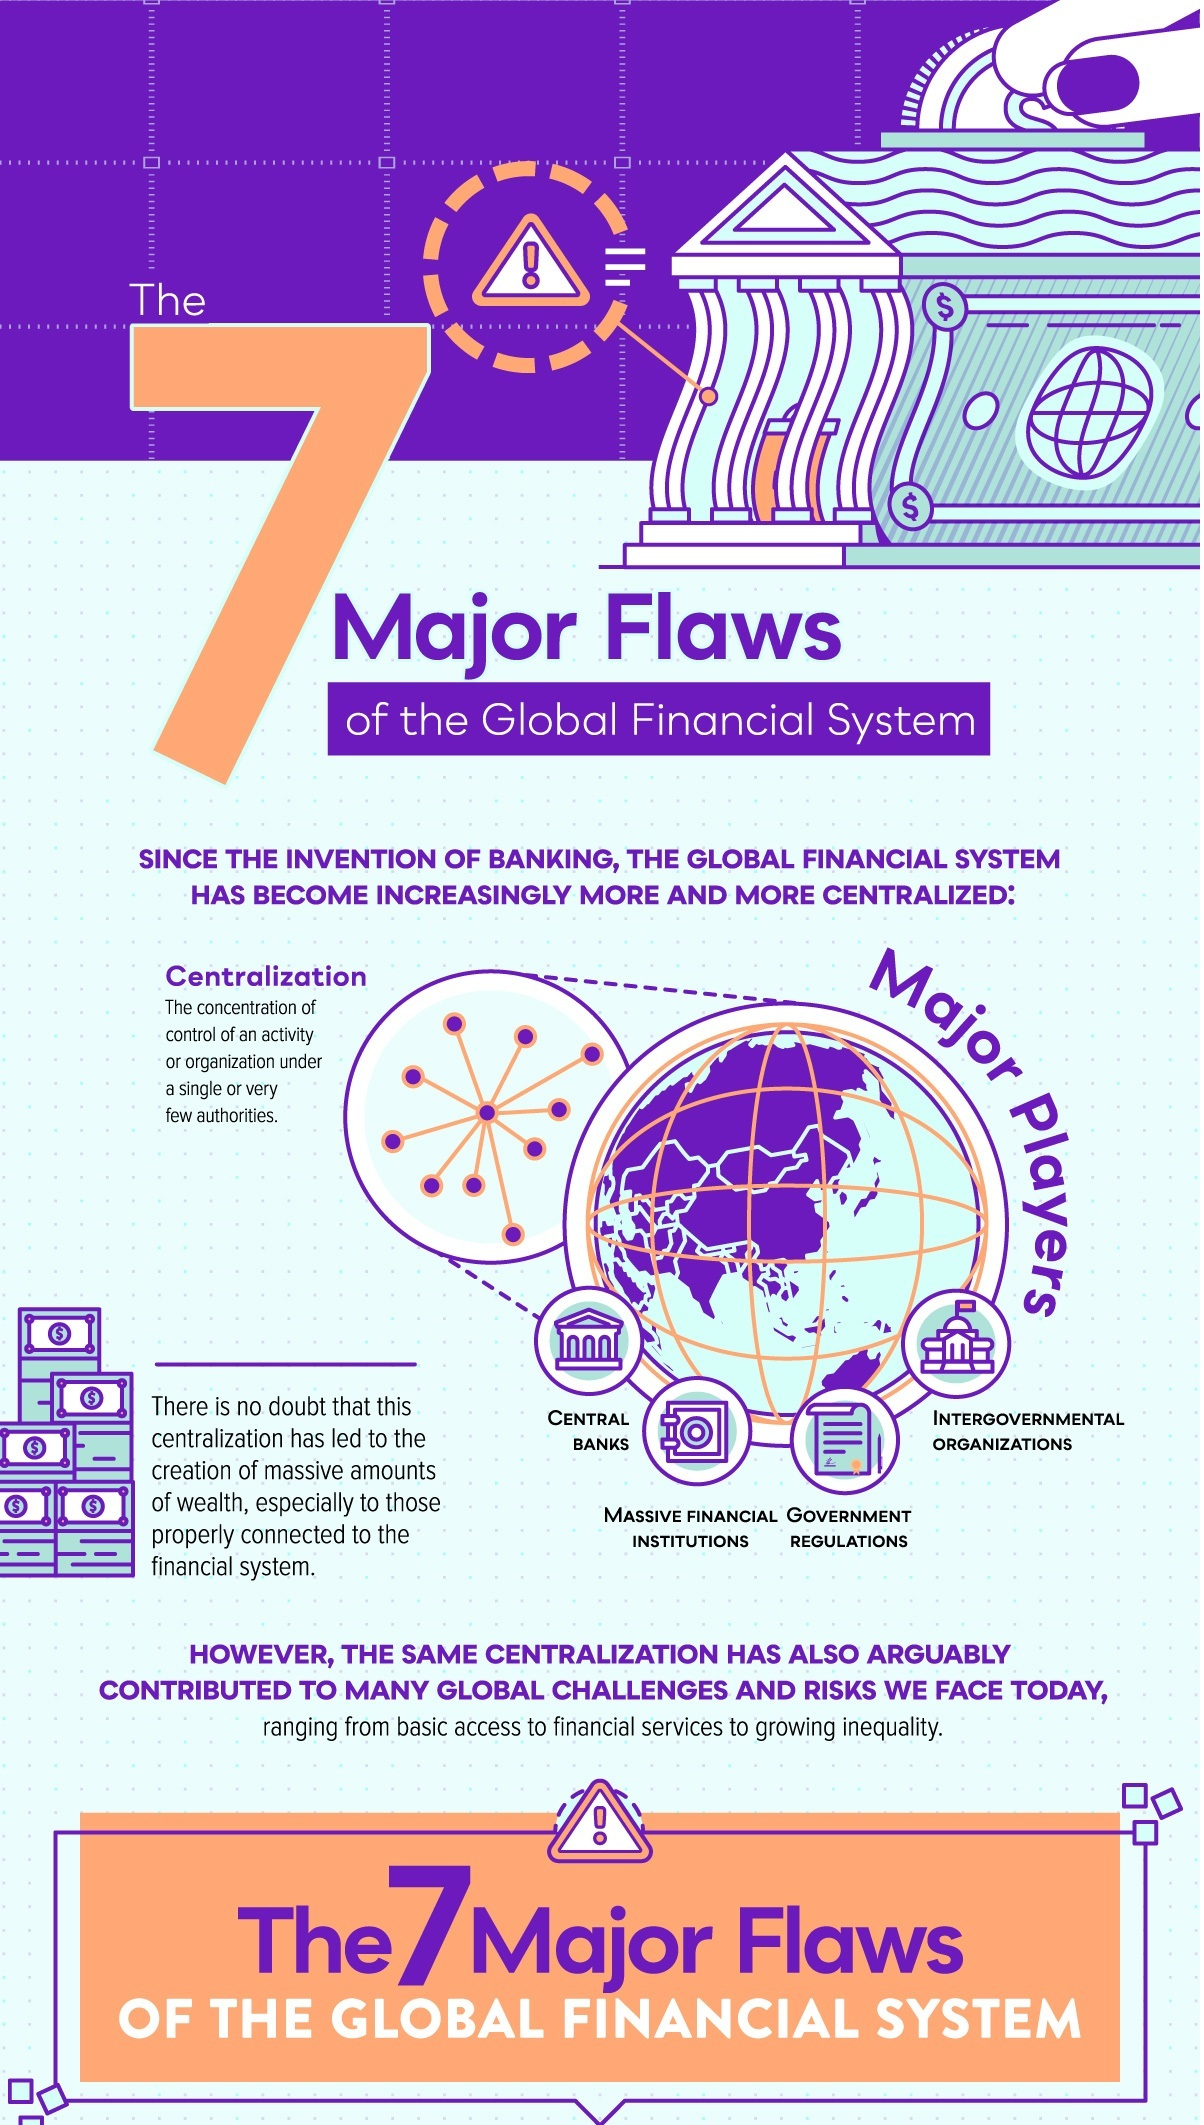 major-flaws-global-financial-system%255B1%255D.jpg